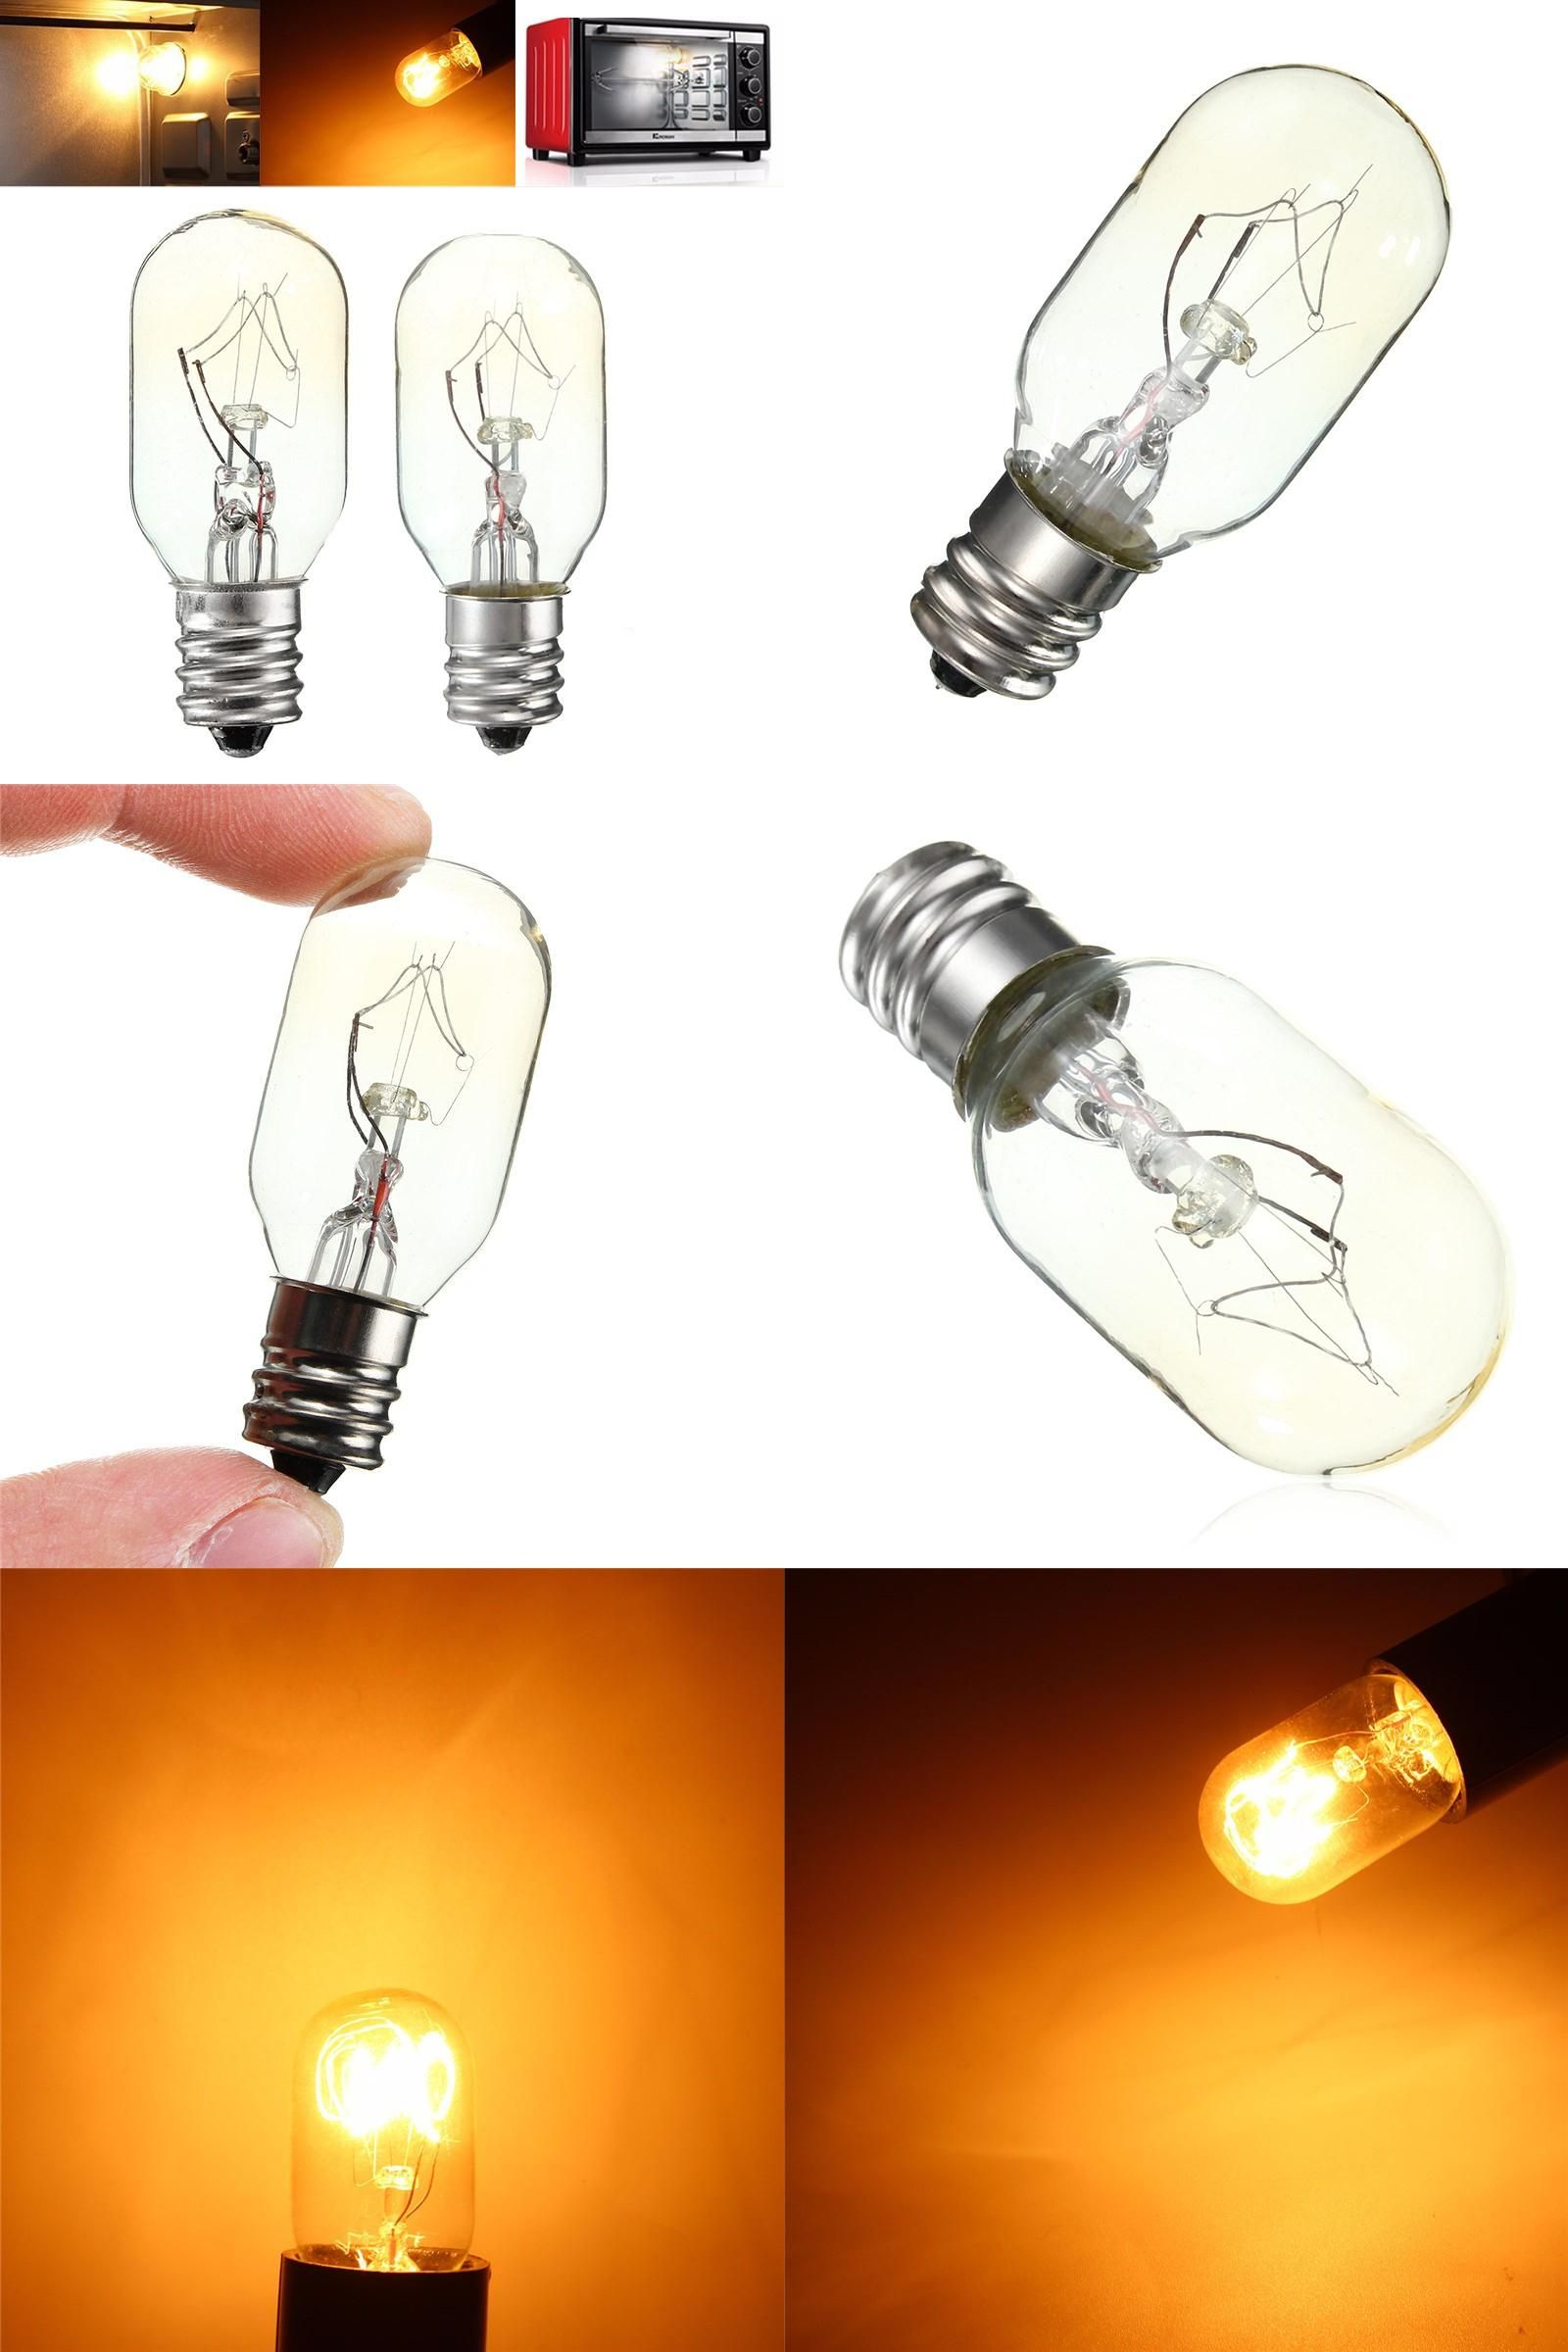 Visit To Buy Oven Fridge Lights High Temperature 15w 25w Incandescent Bulb E12 Toaster Refrigerator Filament Bulbs Glass Glass Lamp Lamp Light Filament Bulb